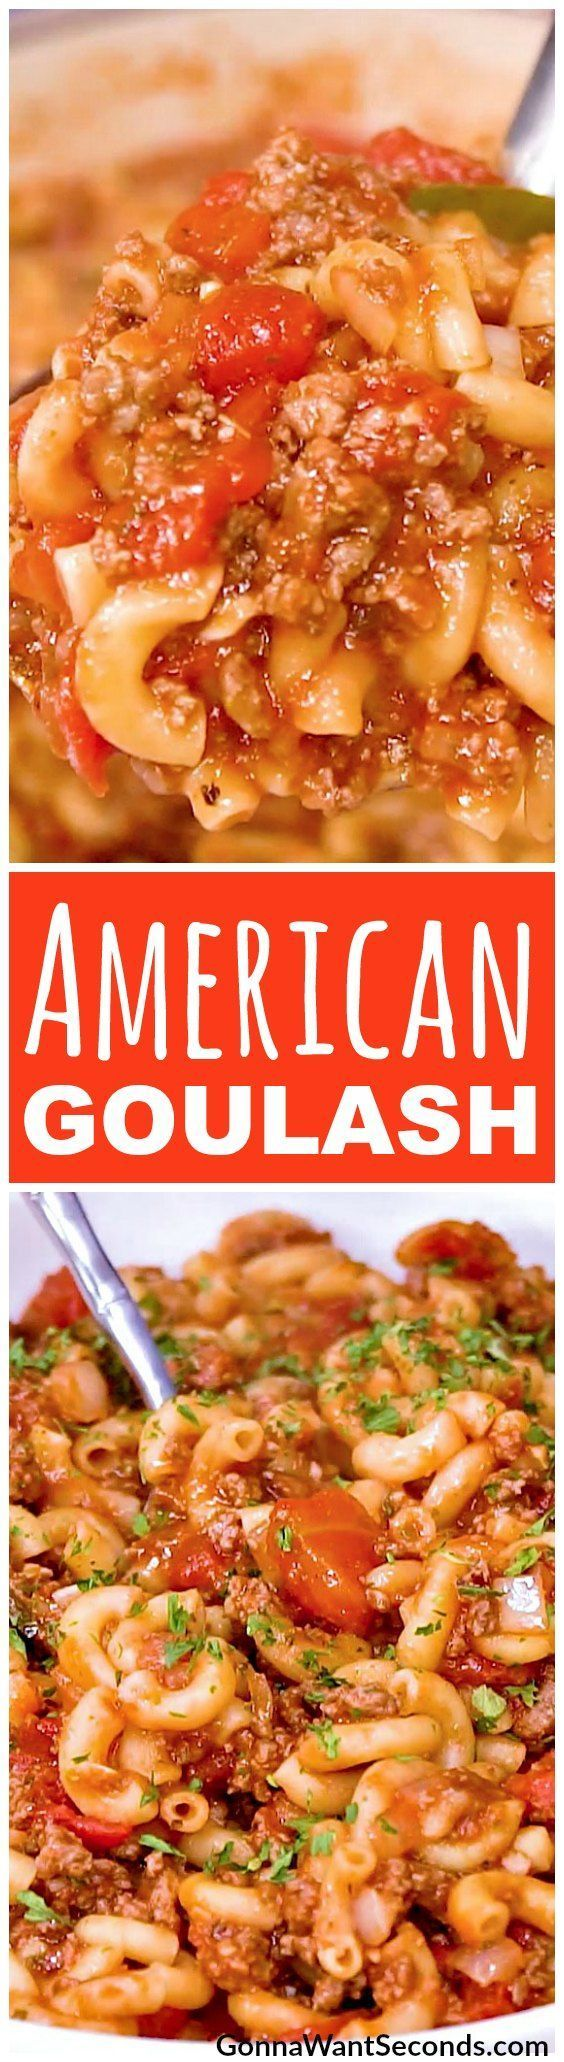 Classic American Goulash. Just a classic meaty tomato-y casserole full of goodness!!